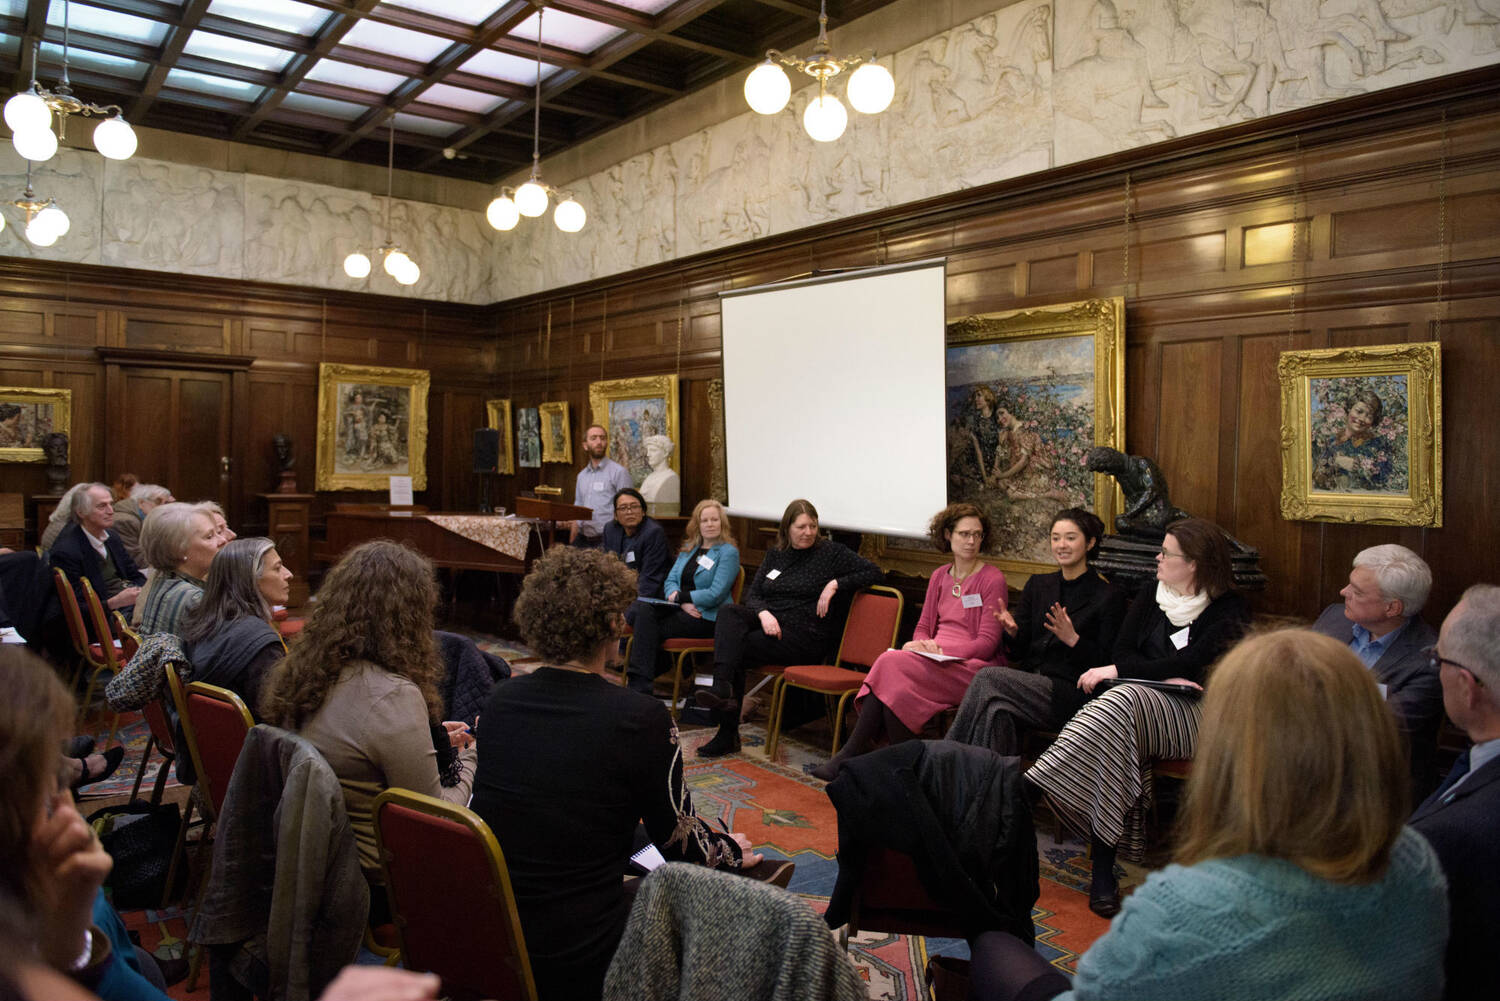 A crowd of people sitting in a wood-panelled room surrounded by paintings. Facing them sit 7 speakers from the symposium.